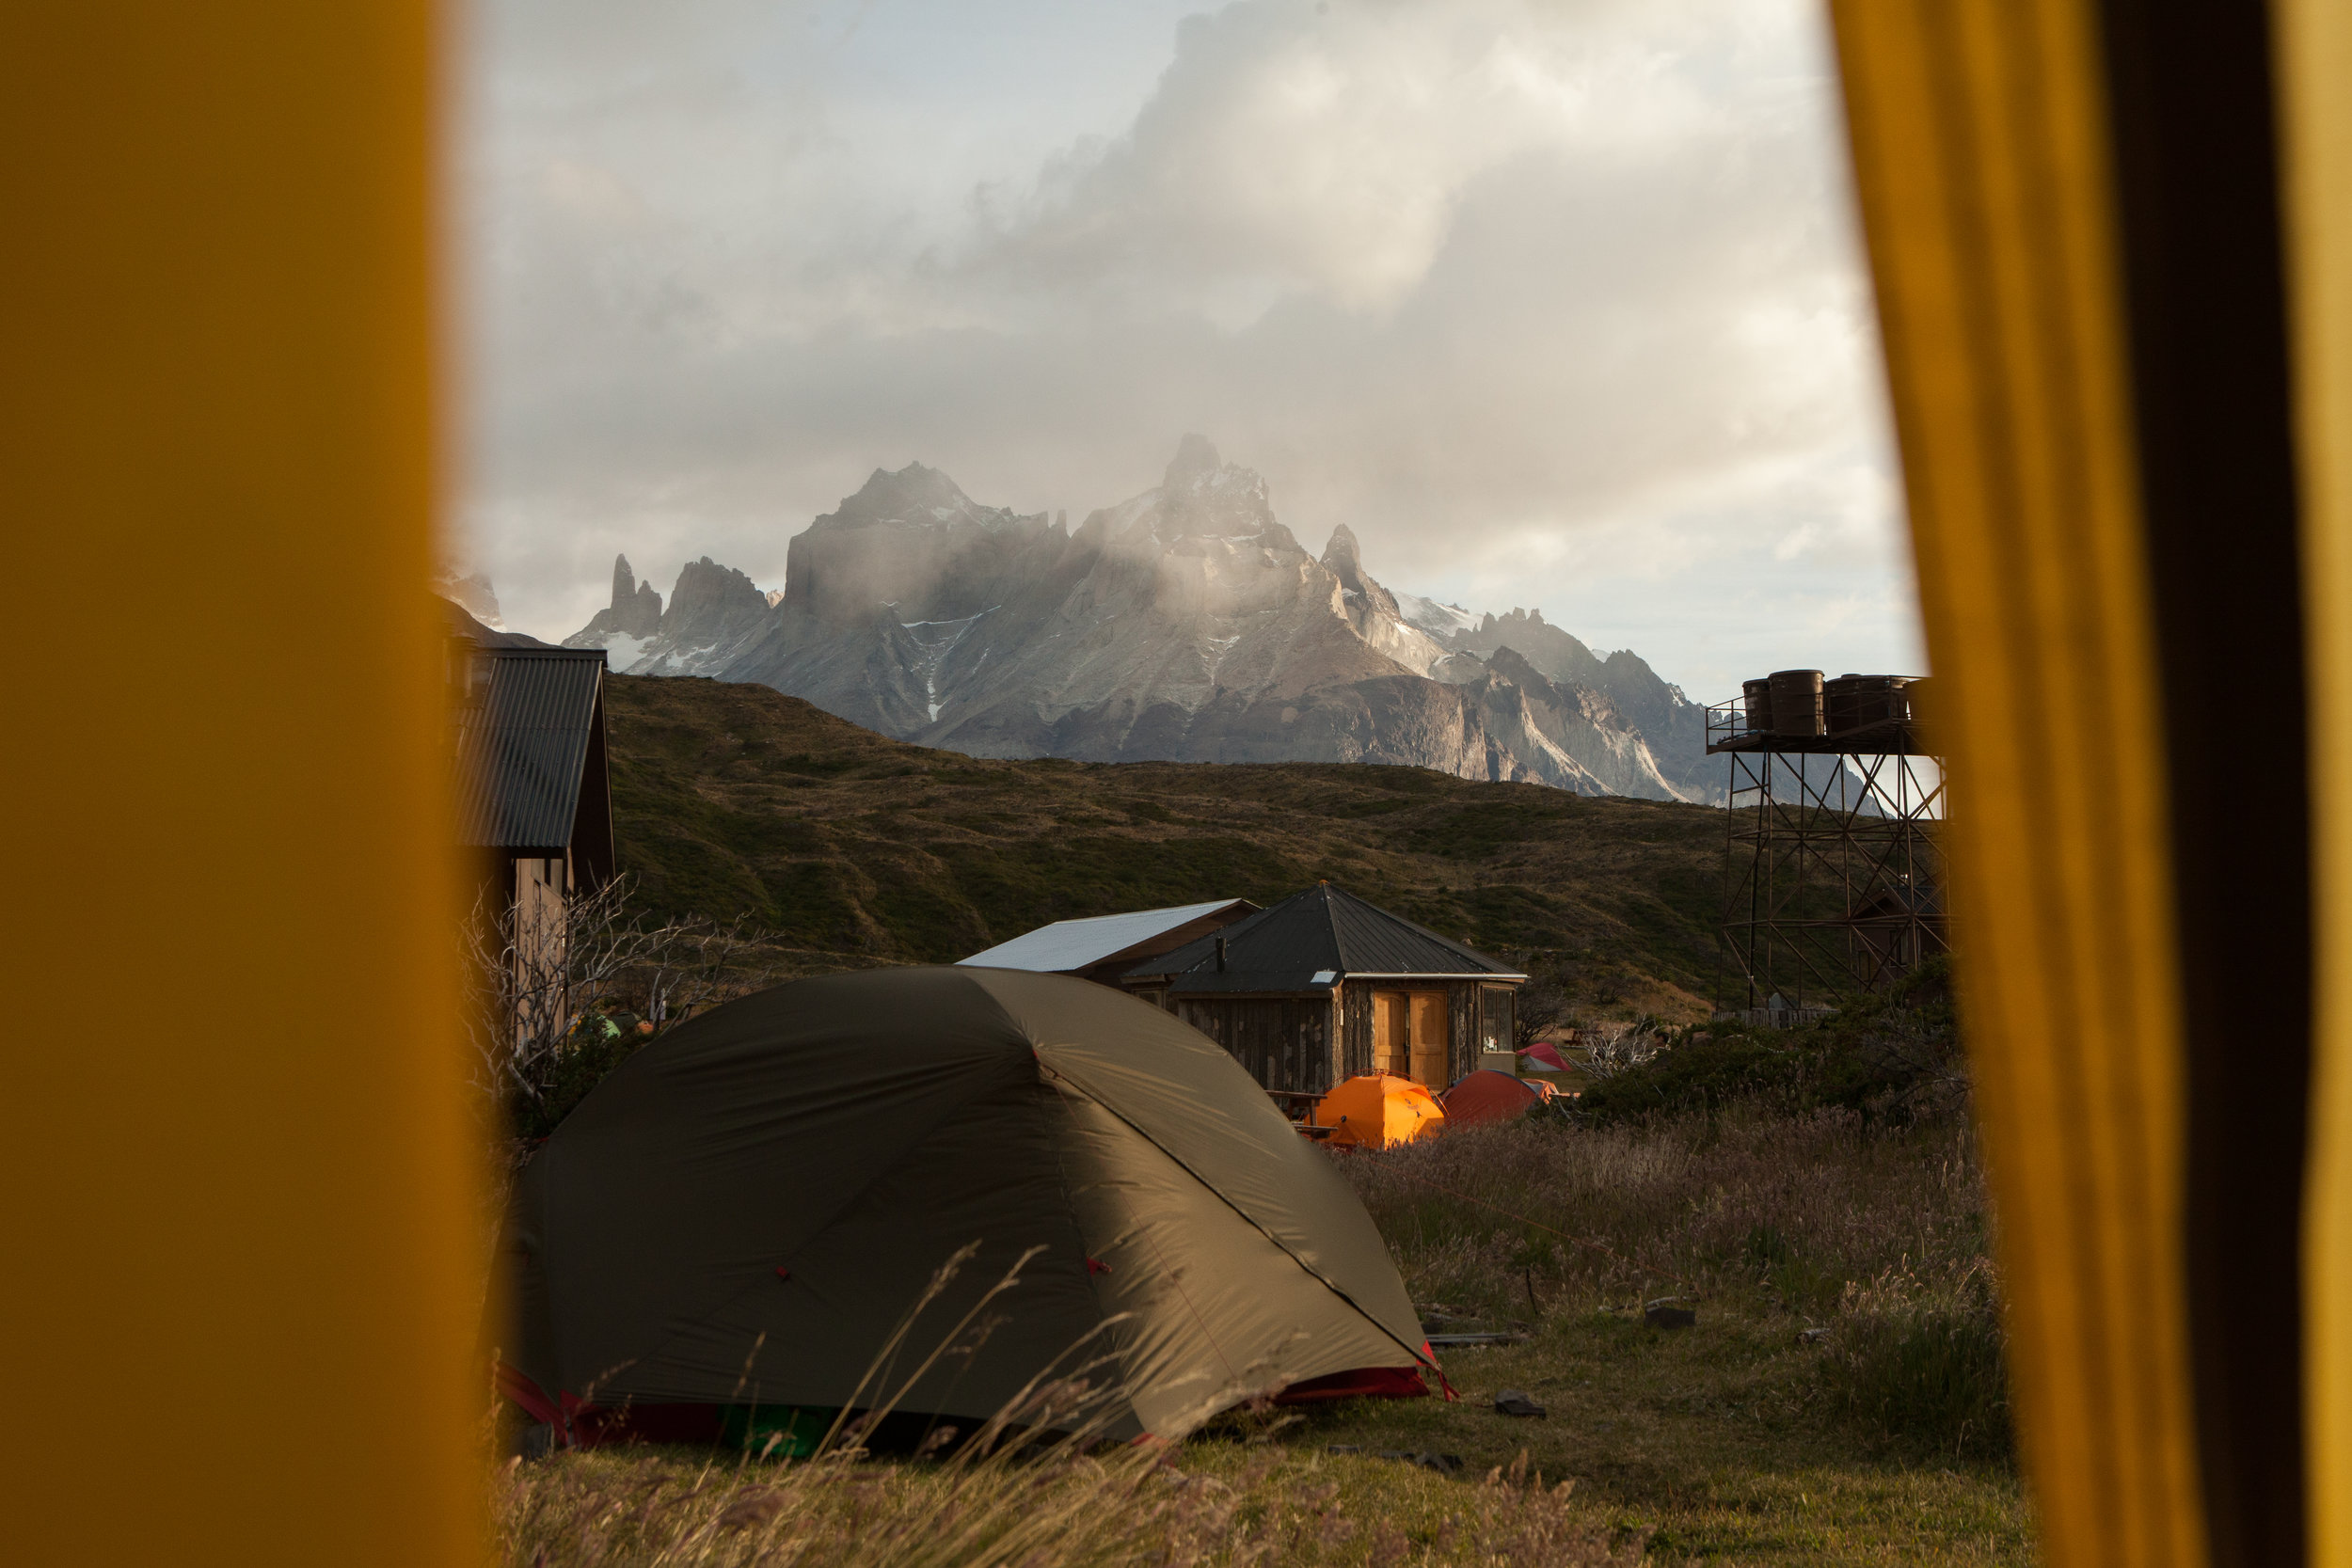 The view from my tent as the rain breaks.   Cuernos del Paine.